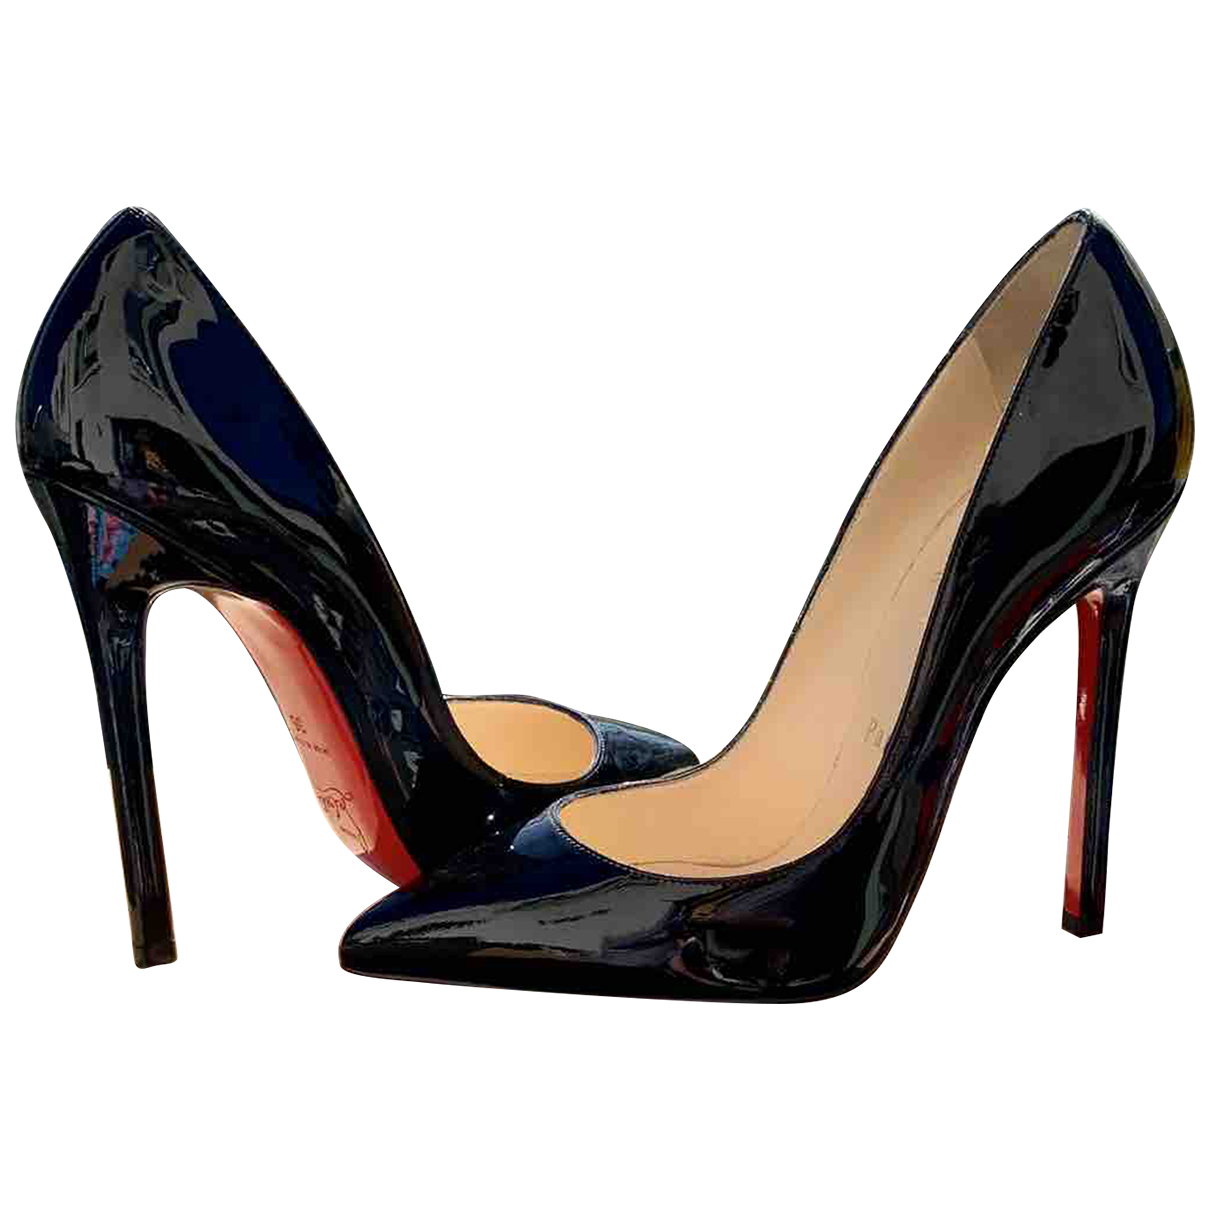 Christian Louboutin Pigalle Black Patent leather Heels for Women 3 UK